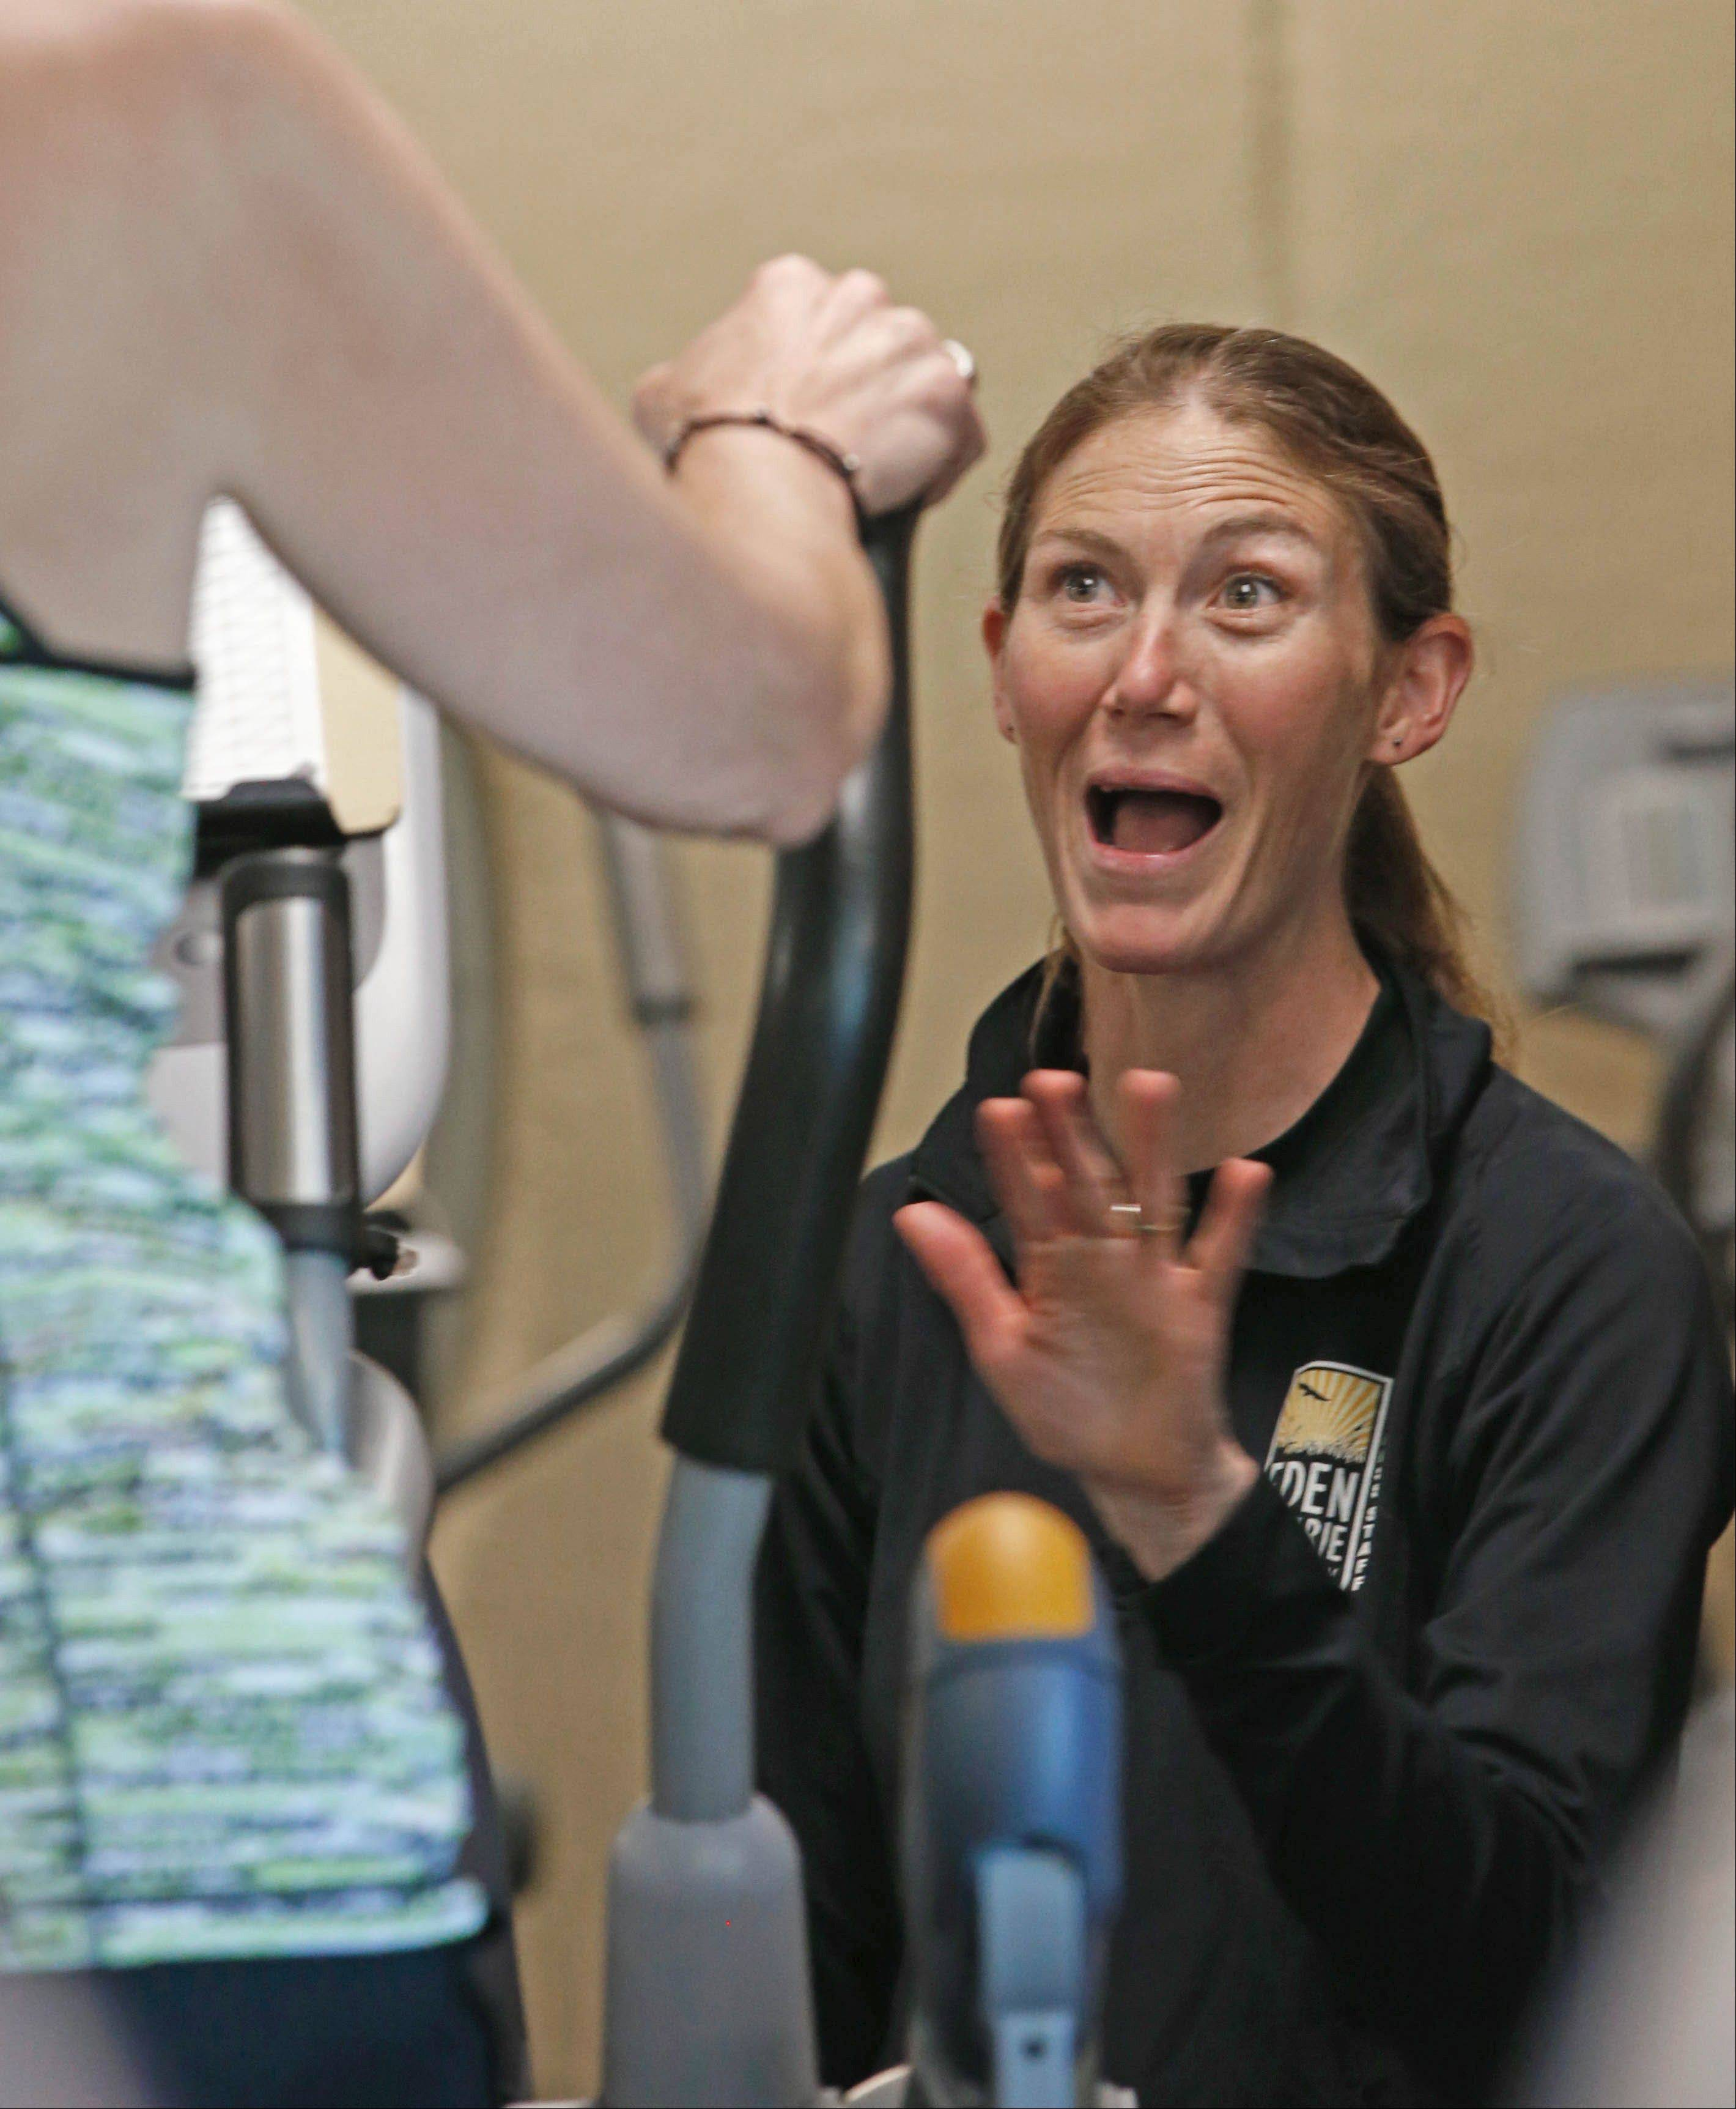 Trainer Kara Jeter talked with class members during the fitness program for cancer survivors at the Eden Prairie Community Center in Minnesota.